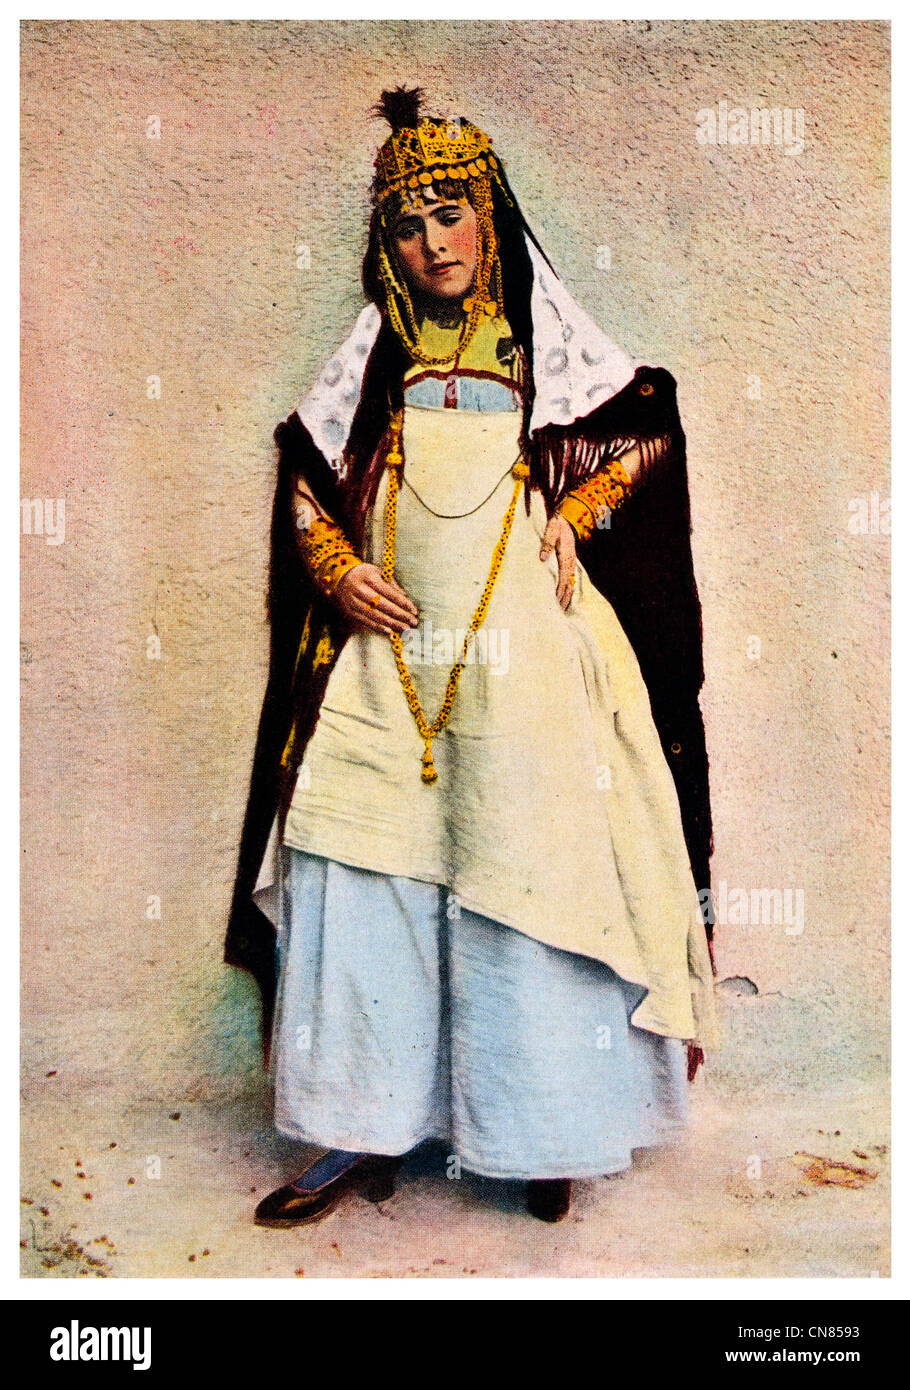 First published 1917  Algerian Costume Woman Female Dancer of the Cafes Algeria - Stock Image